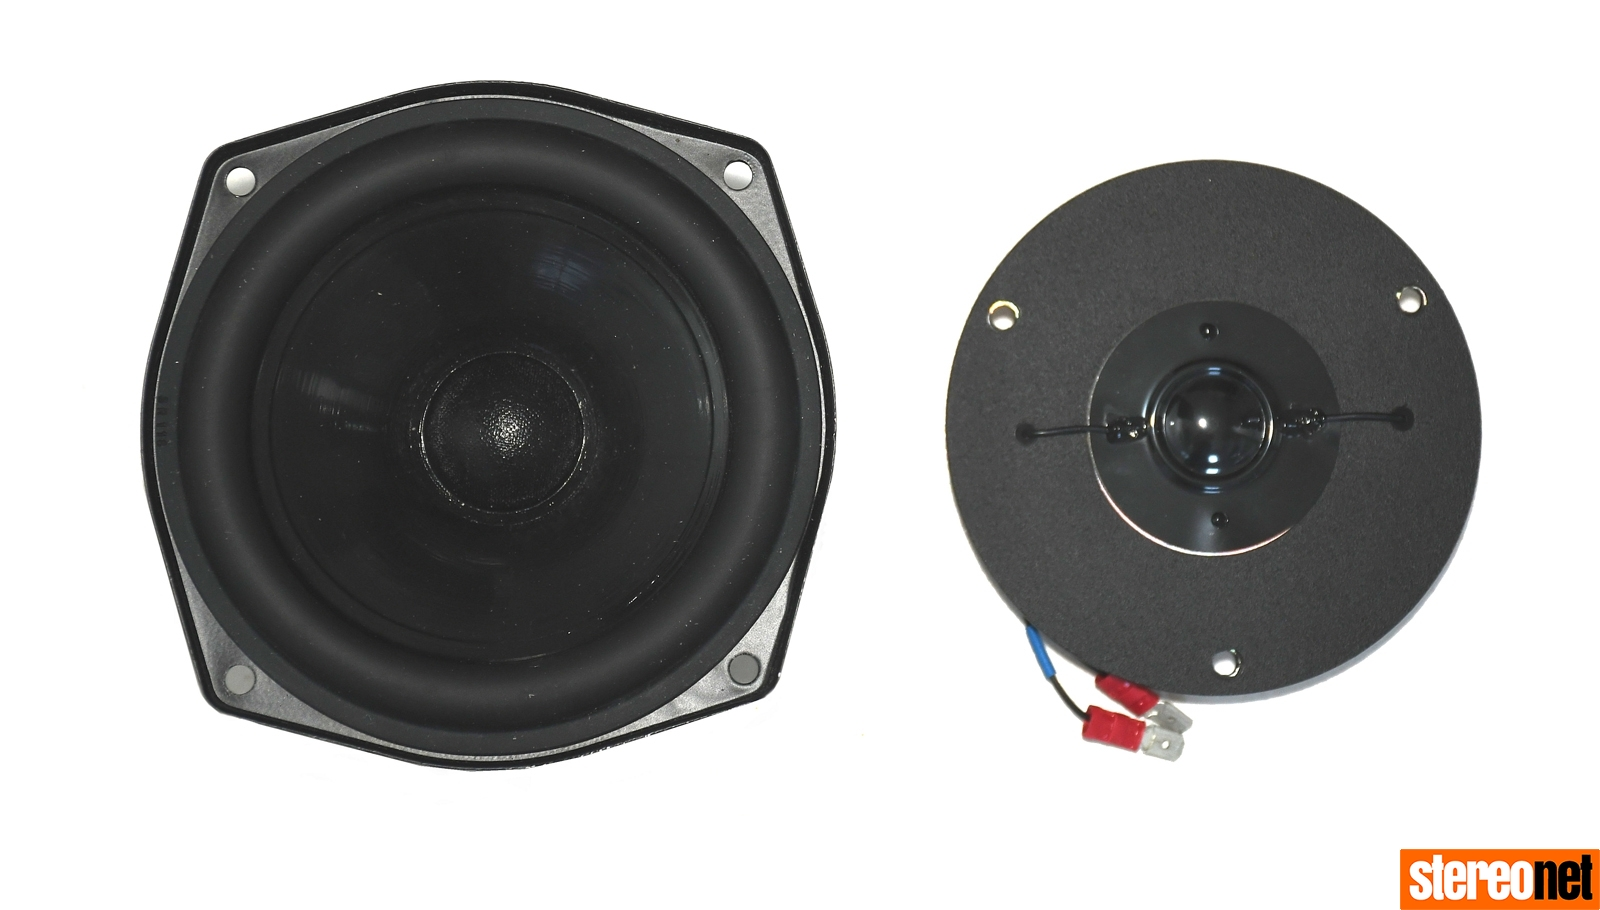 Falcon Acoustics IMF100 Kit Review